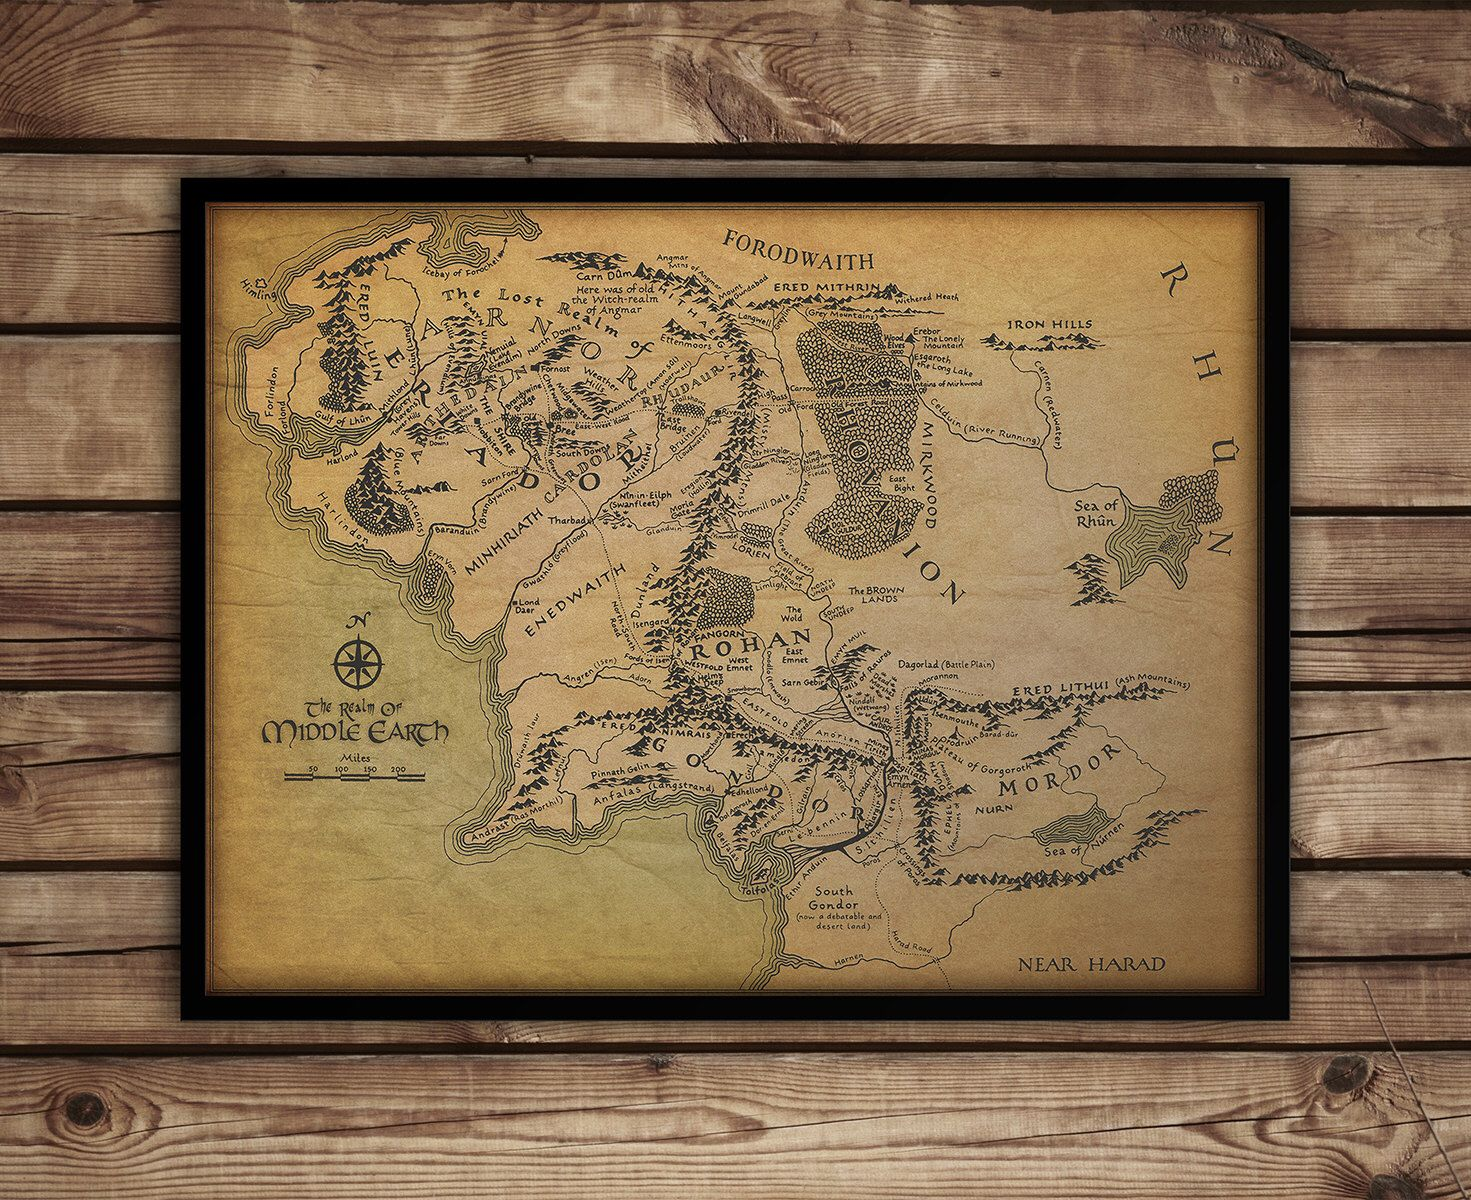 Map of middle earth lord of the rings map middle earth map lord map of middle earth lord of the rings map middle earth map lord publicscrutiny Images